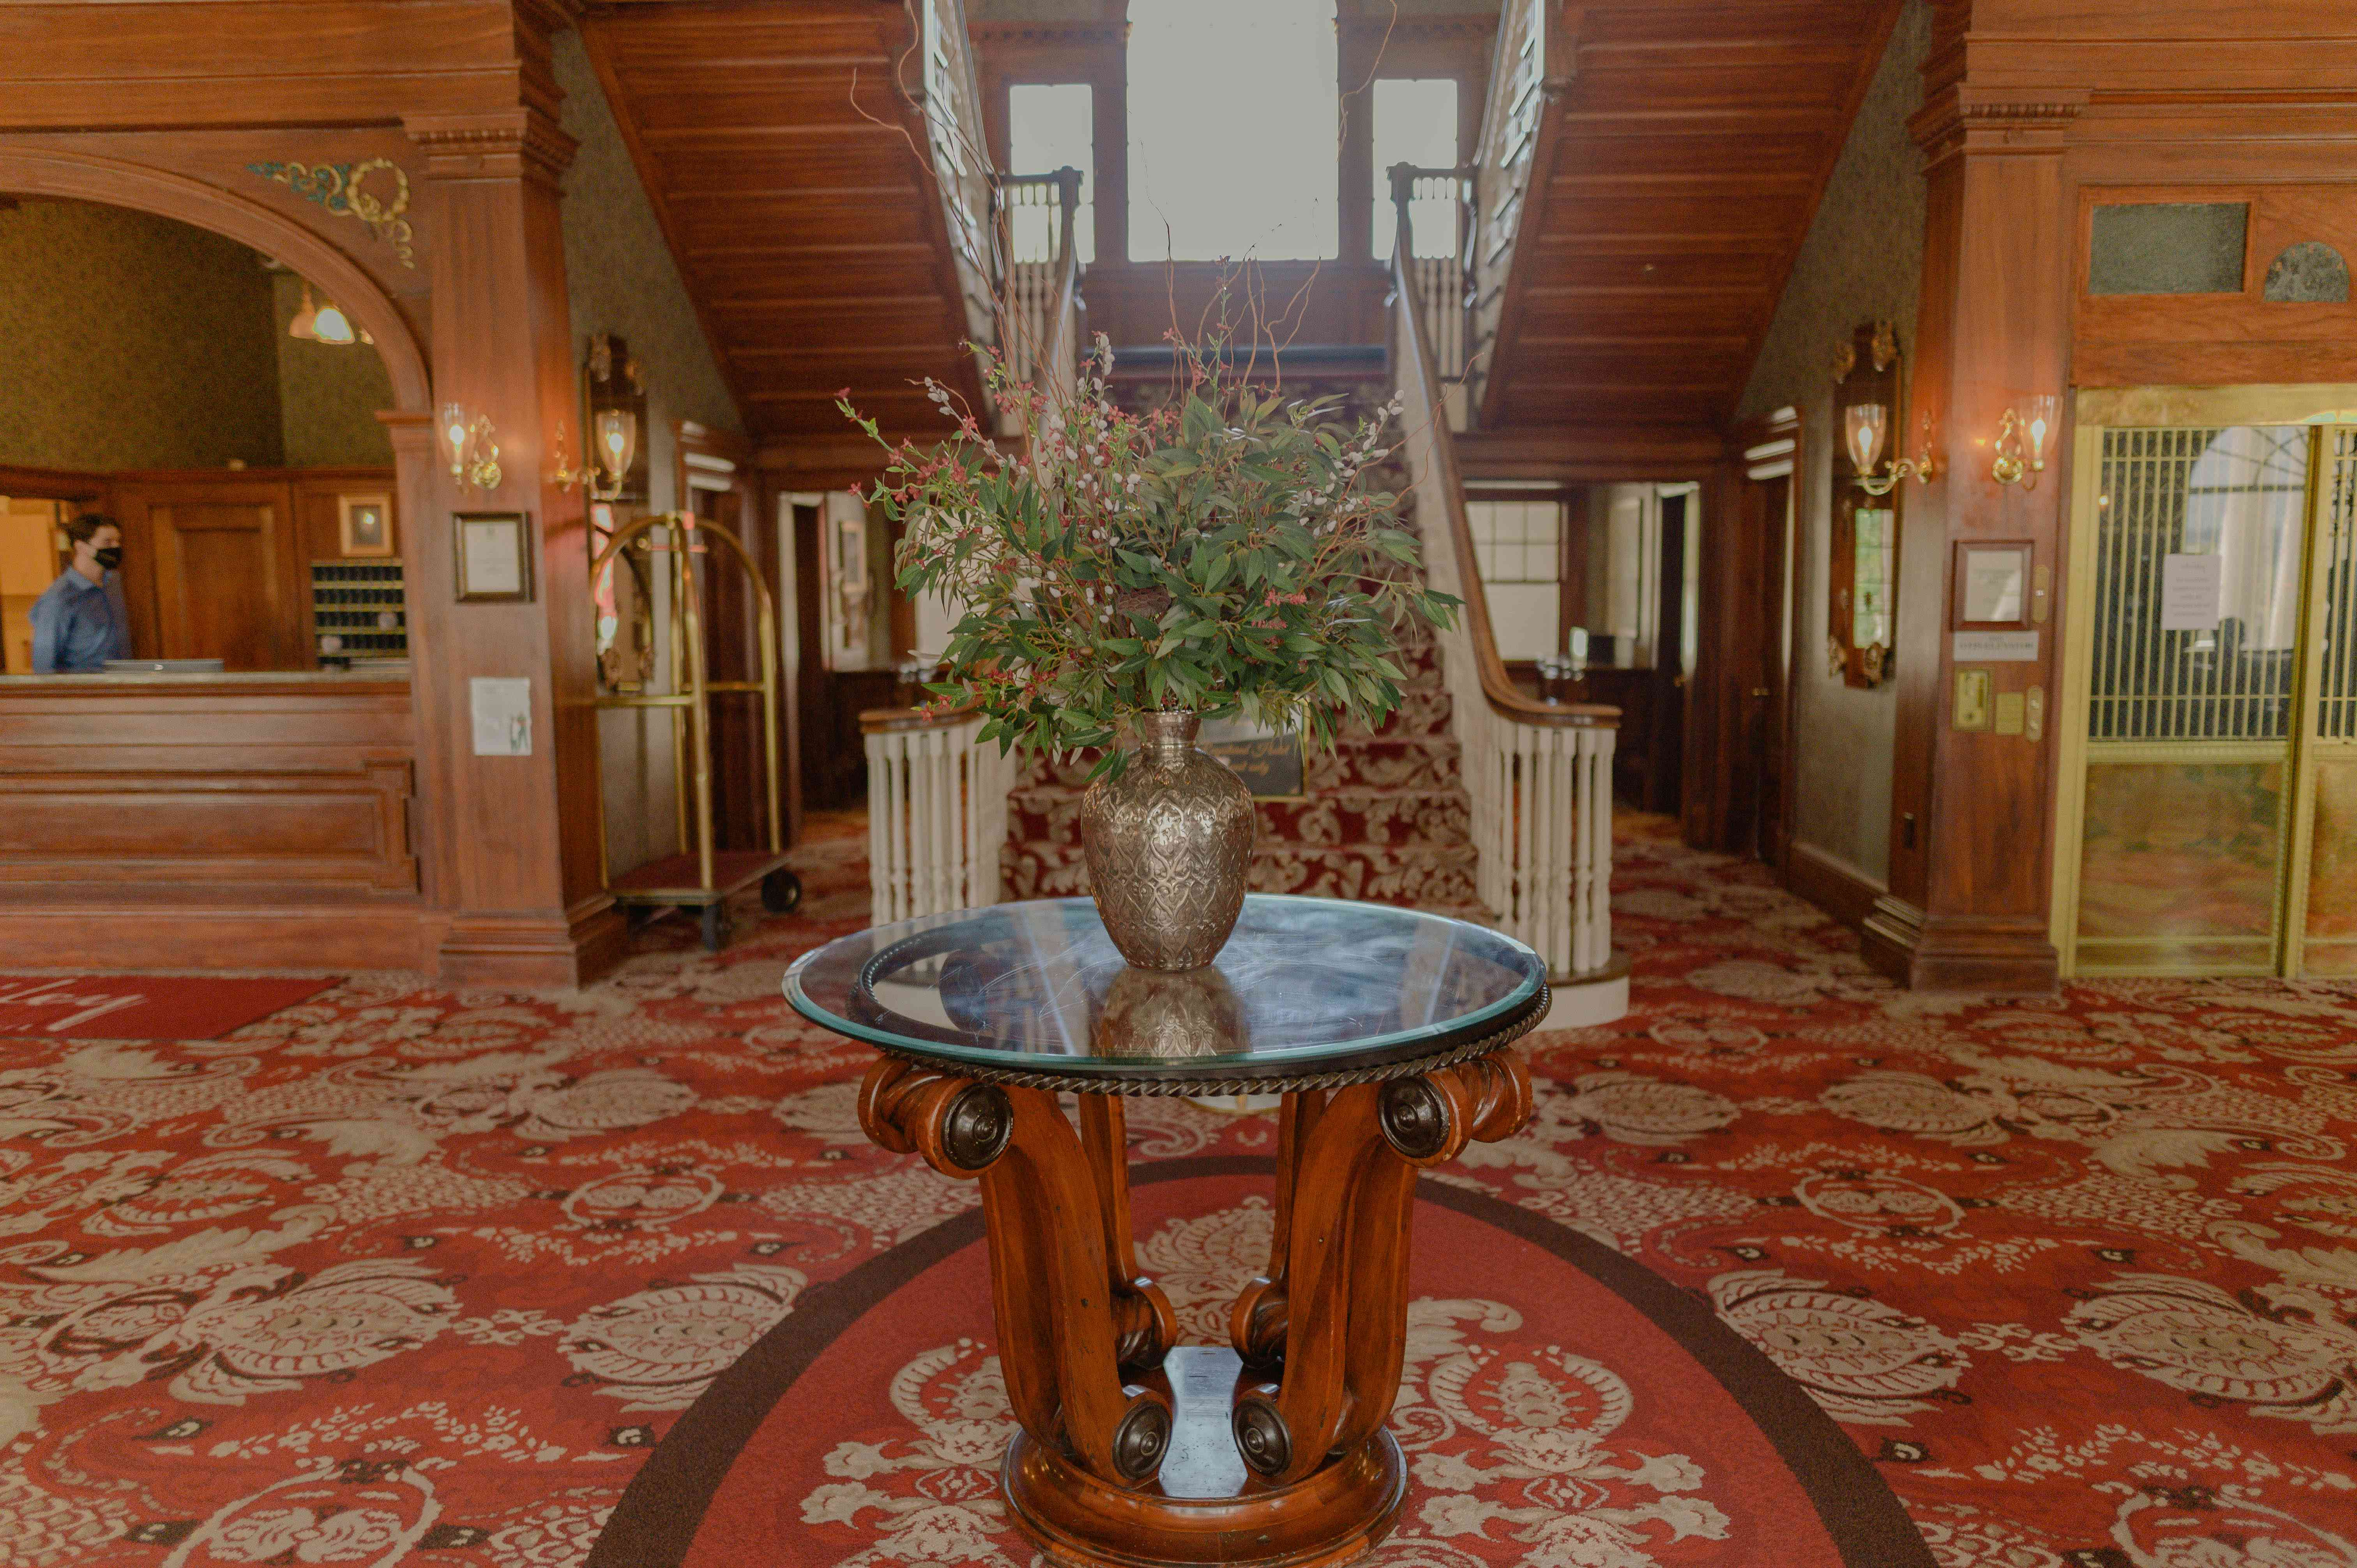 The Grand Staircase at the Stanley Hotel in Colorado